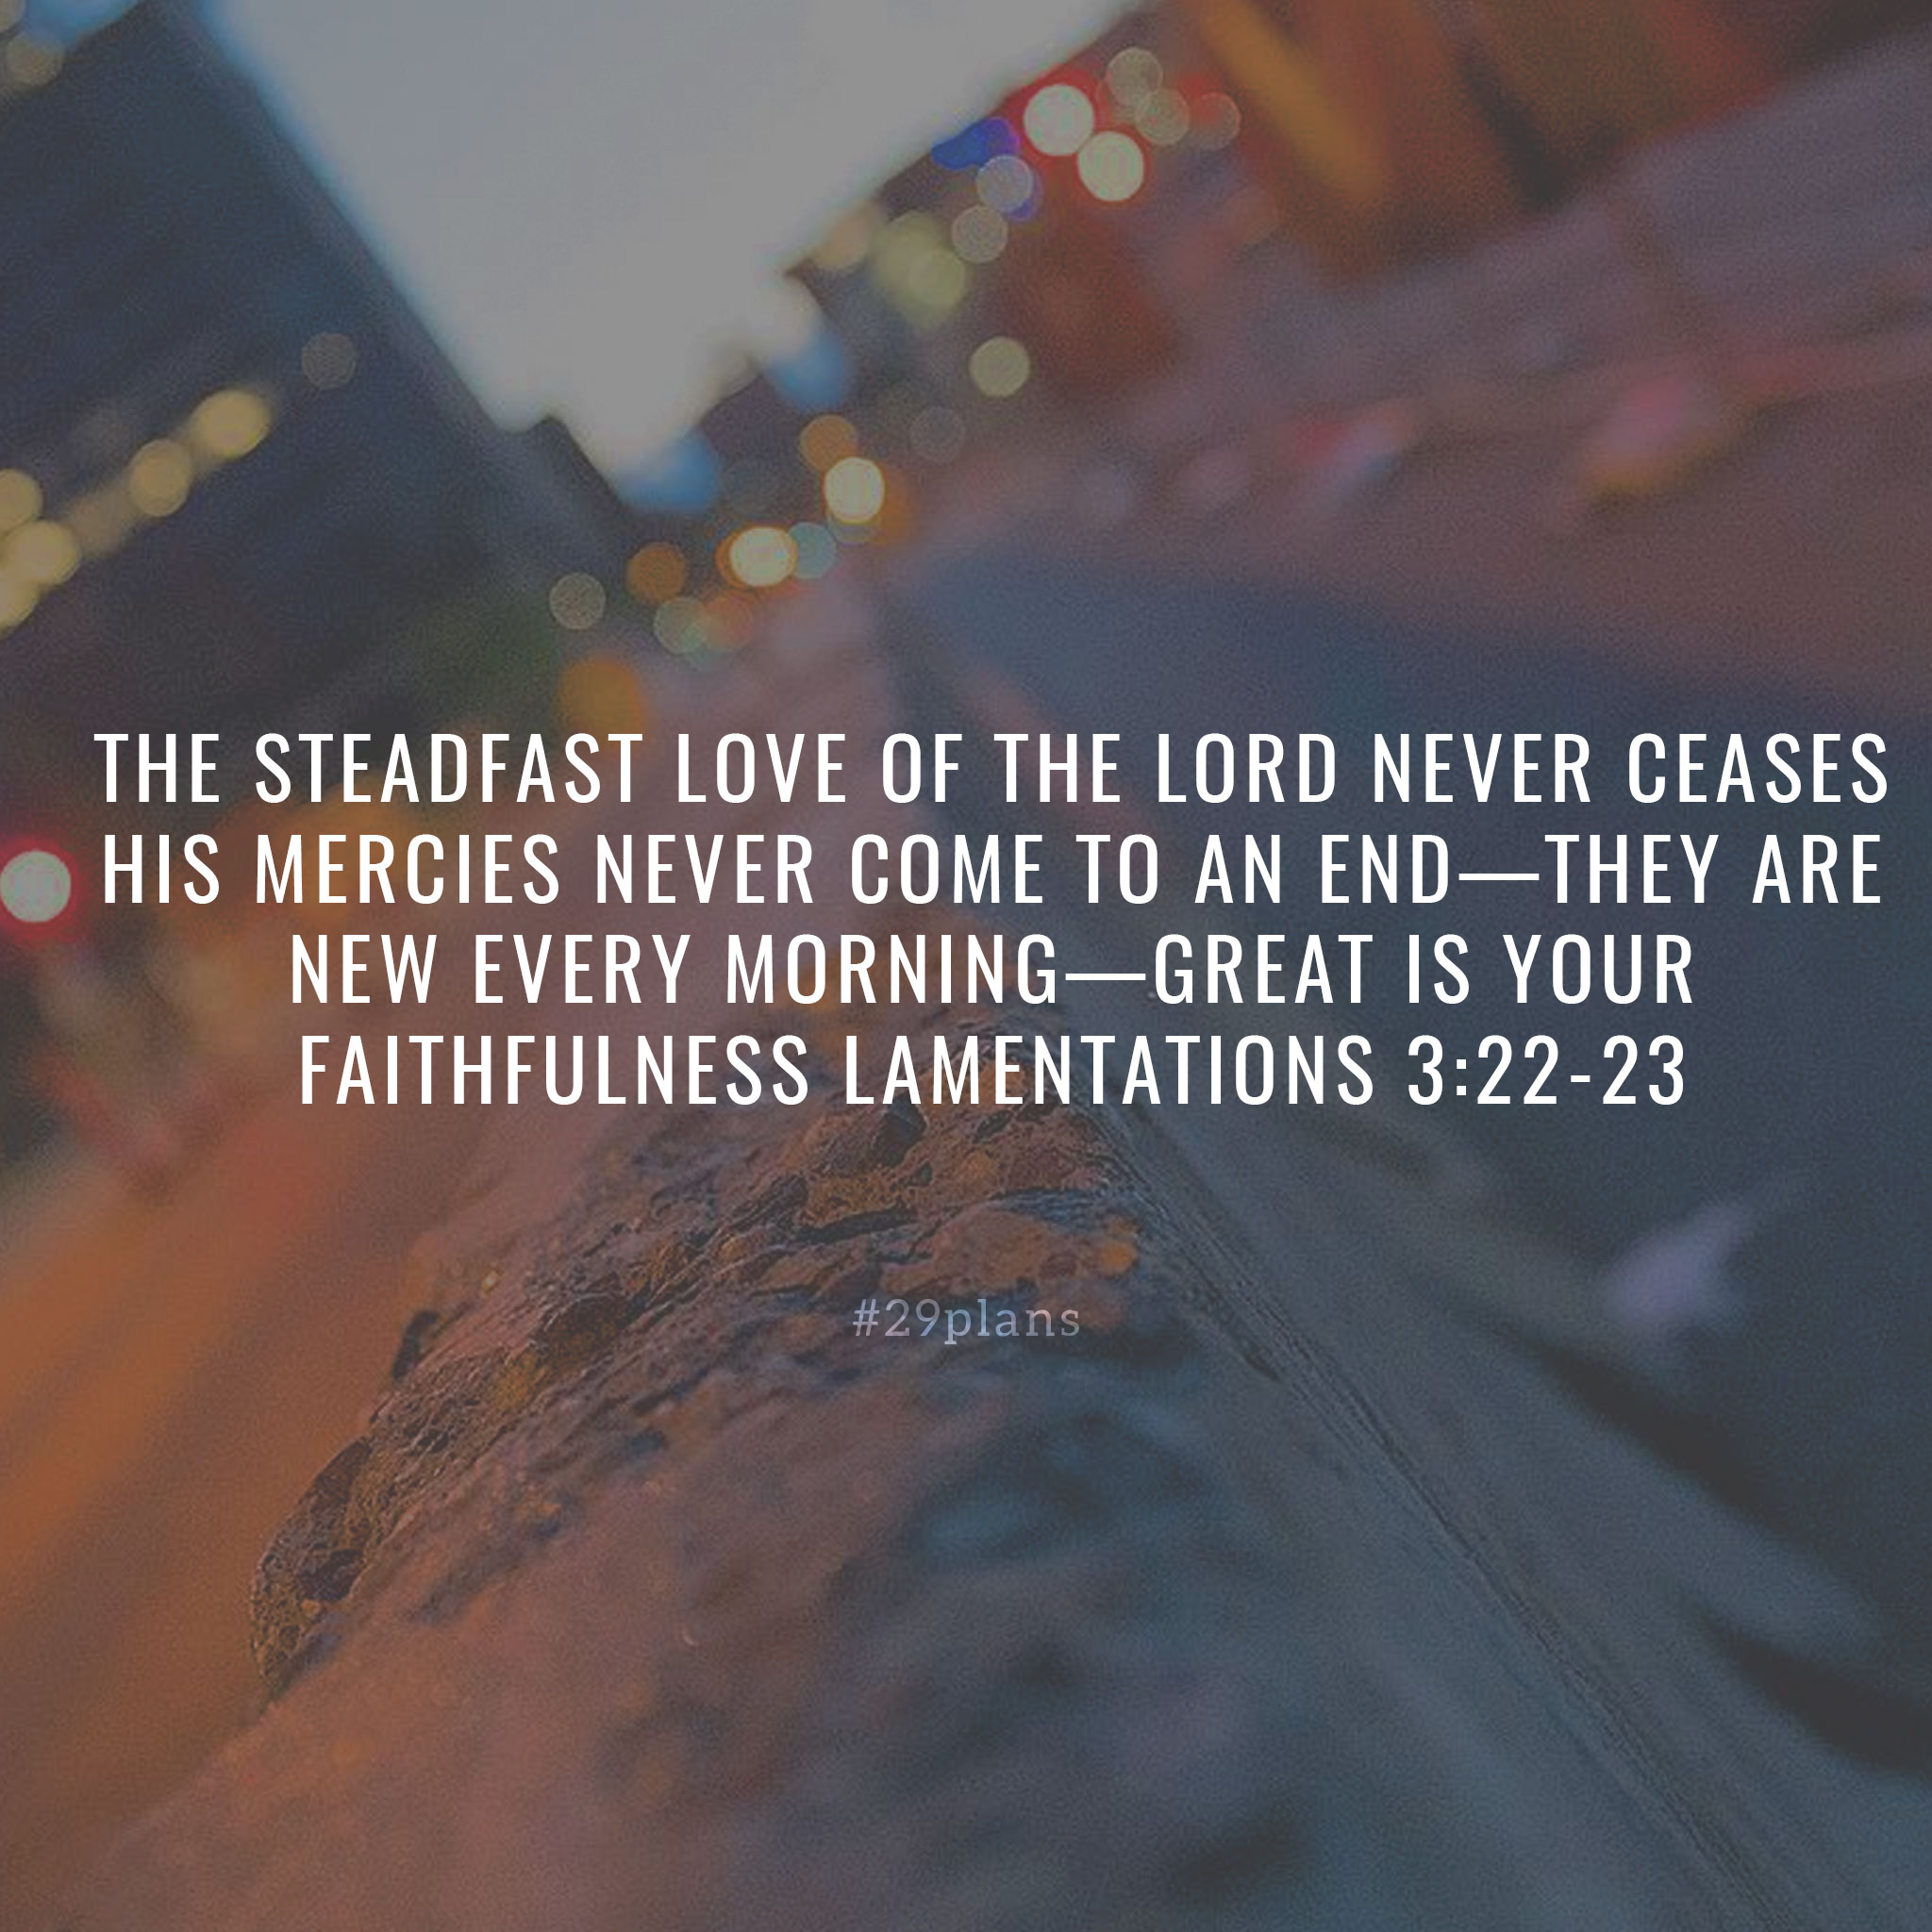 Today's Guide —11.26.18 — The Steadfast Love of the Lord